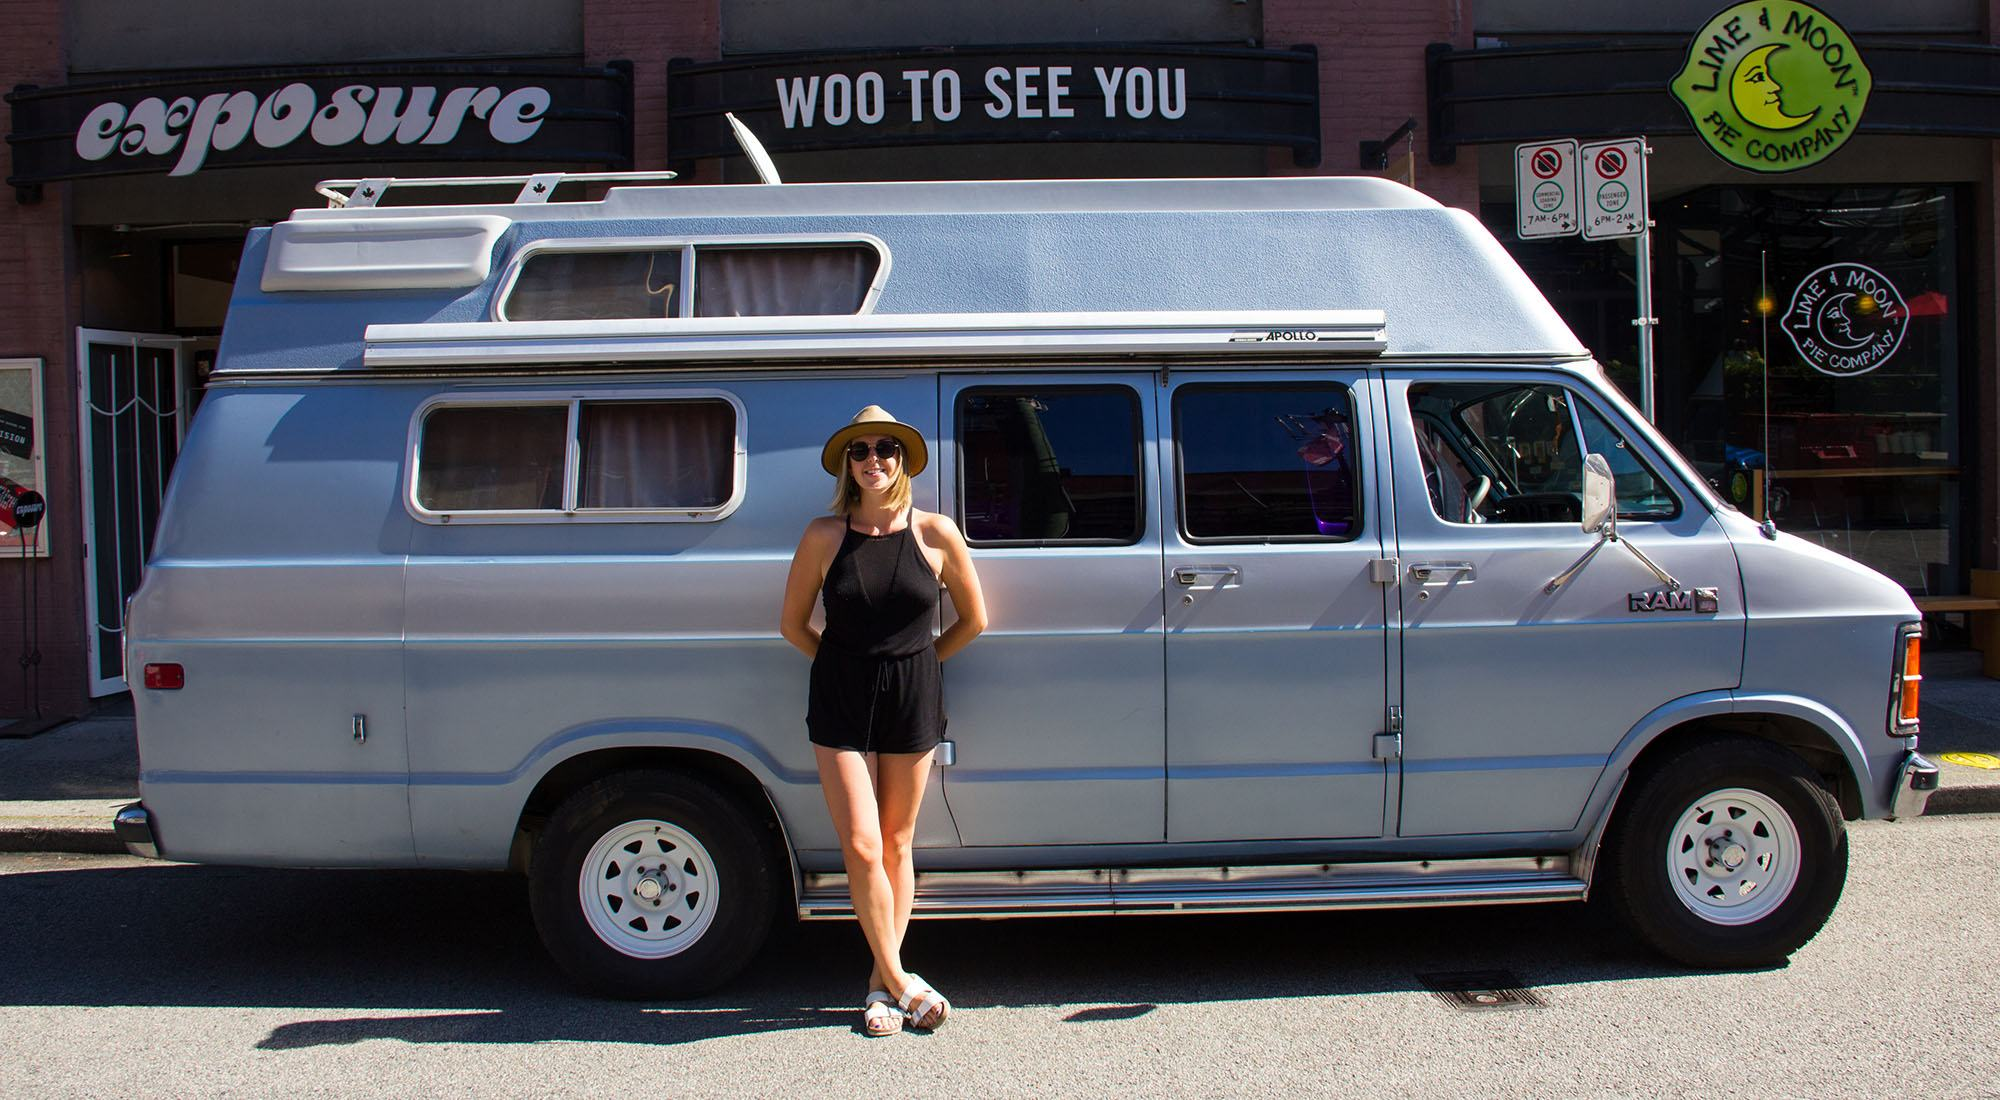 Emily chambers and her van in yaletown